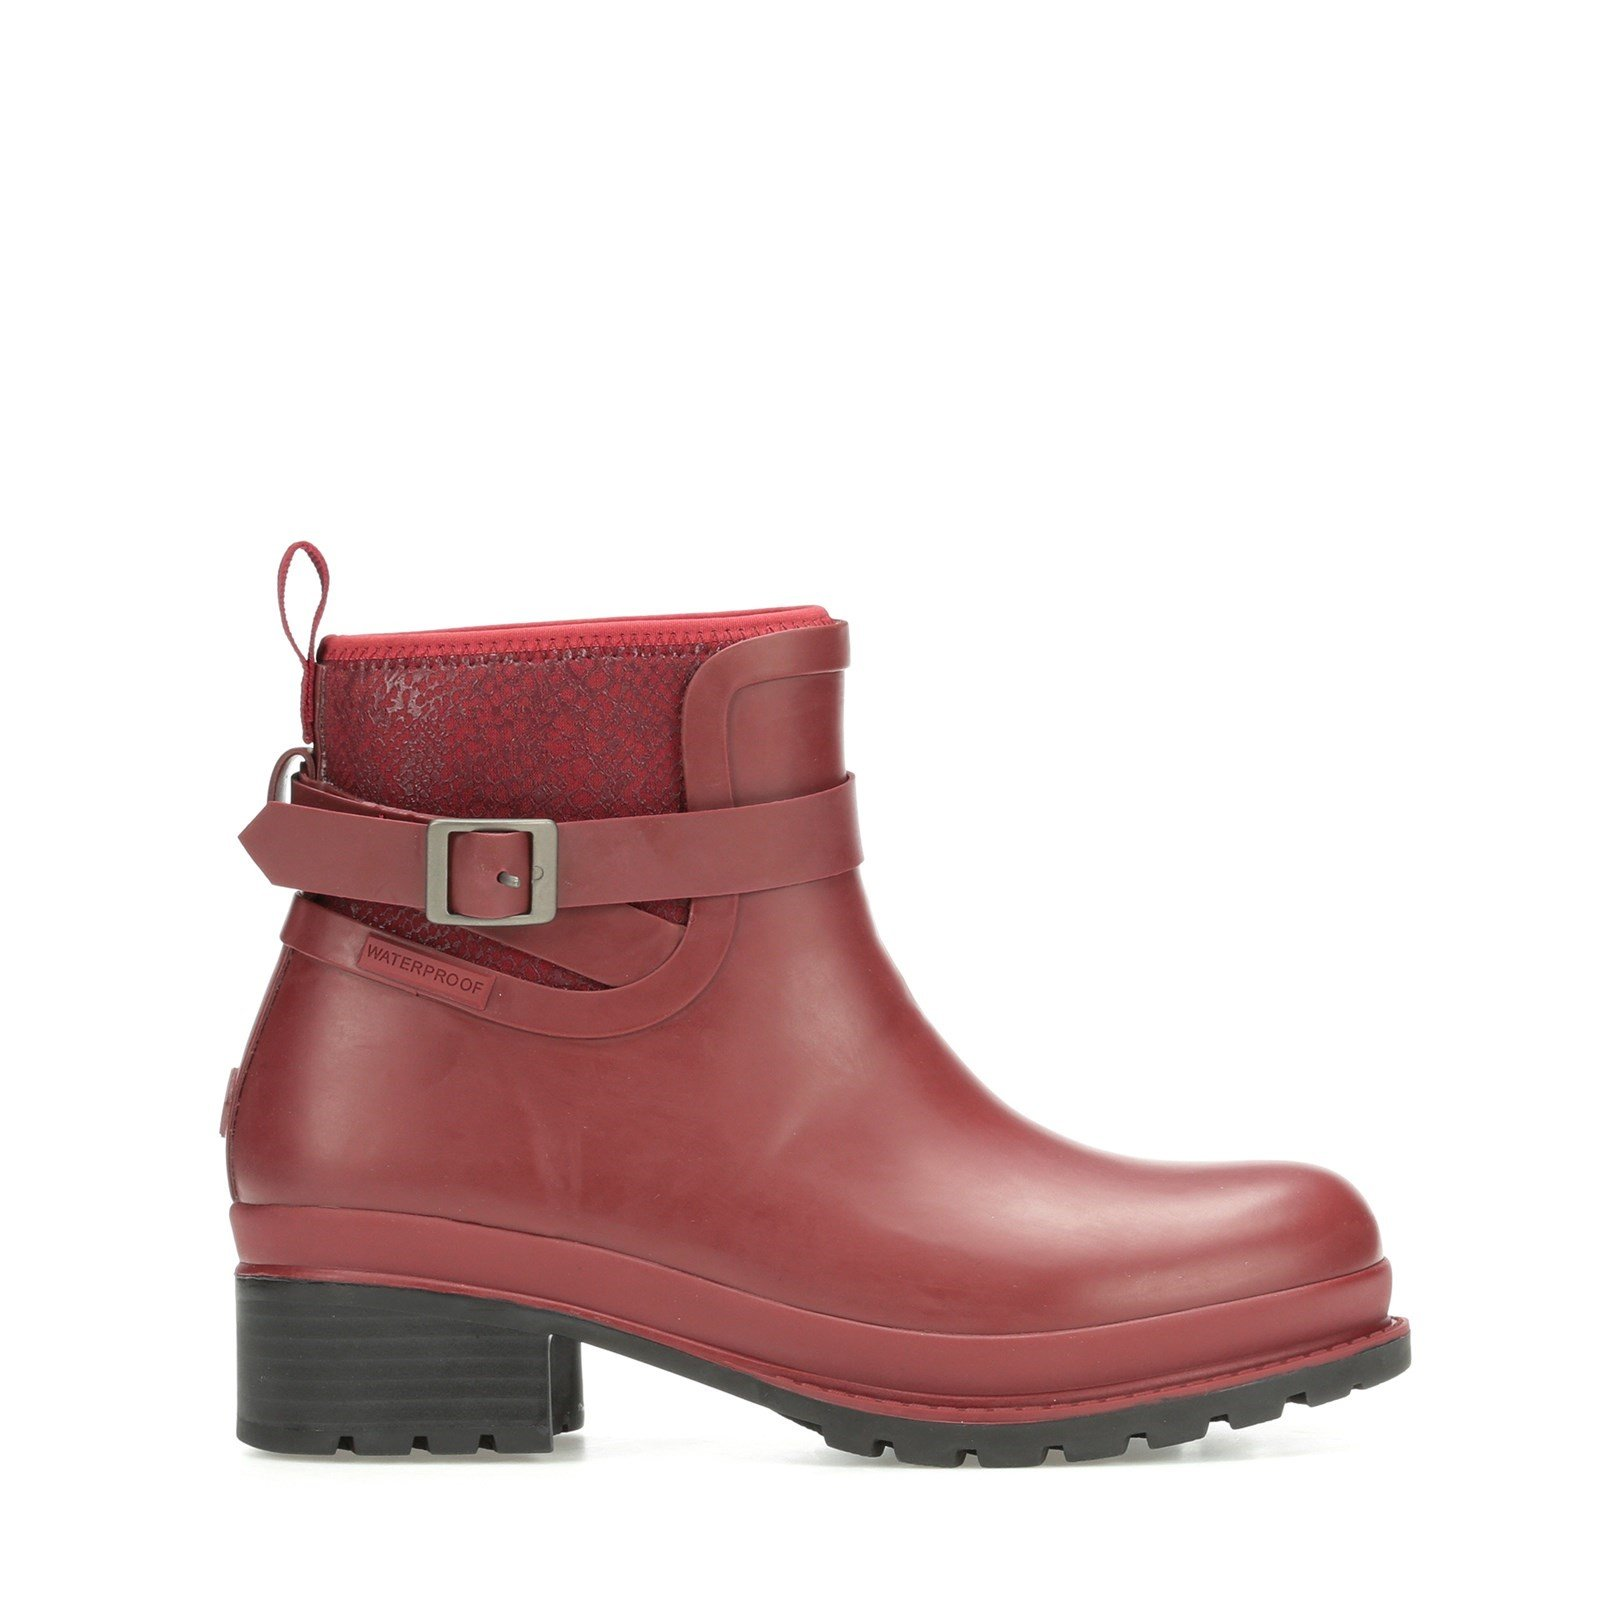 Muck Boots Women's Liberty Rubber Ankle Boots Various Colours 31816 - Cordovan 3